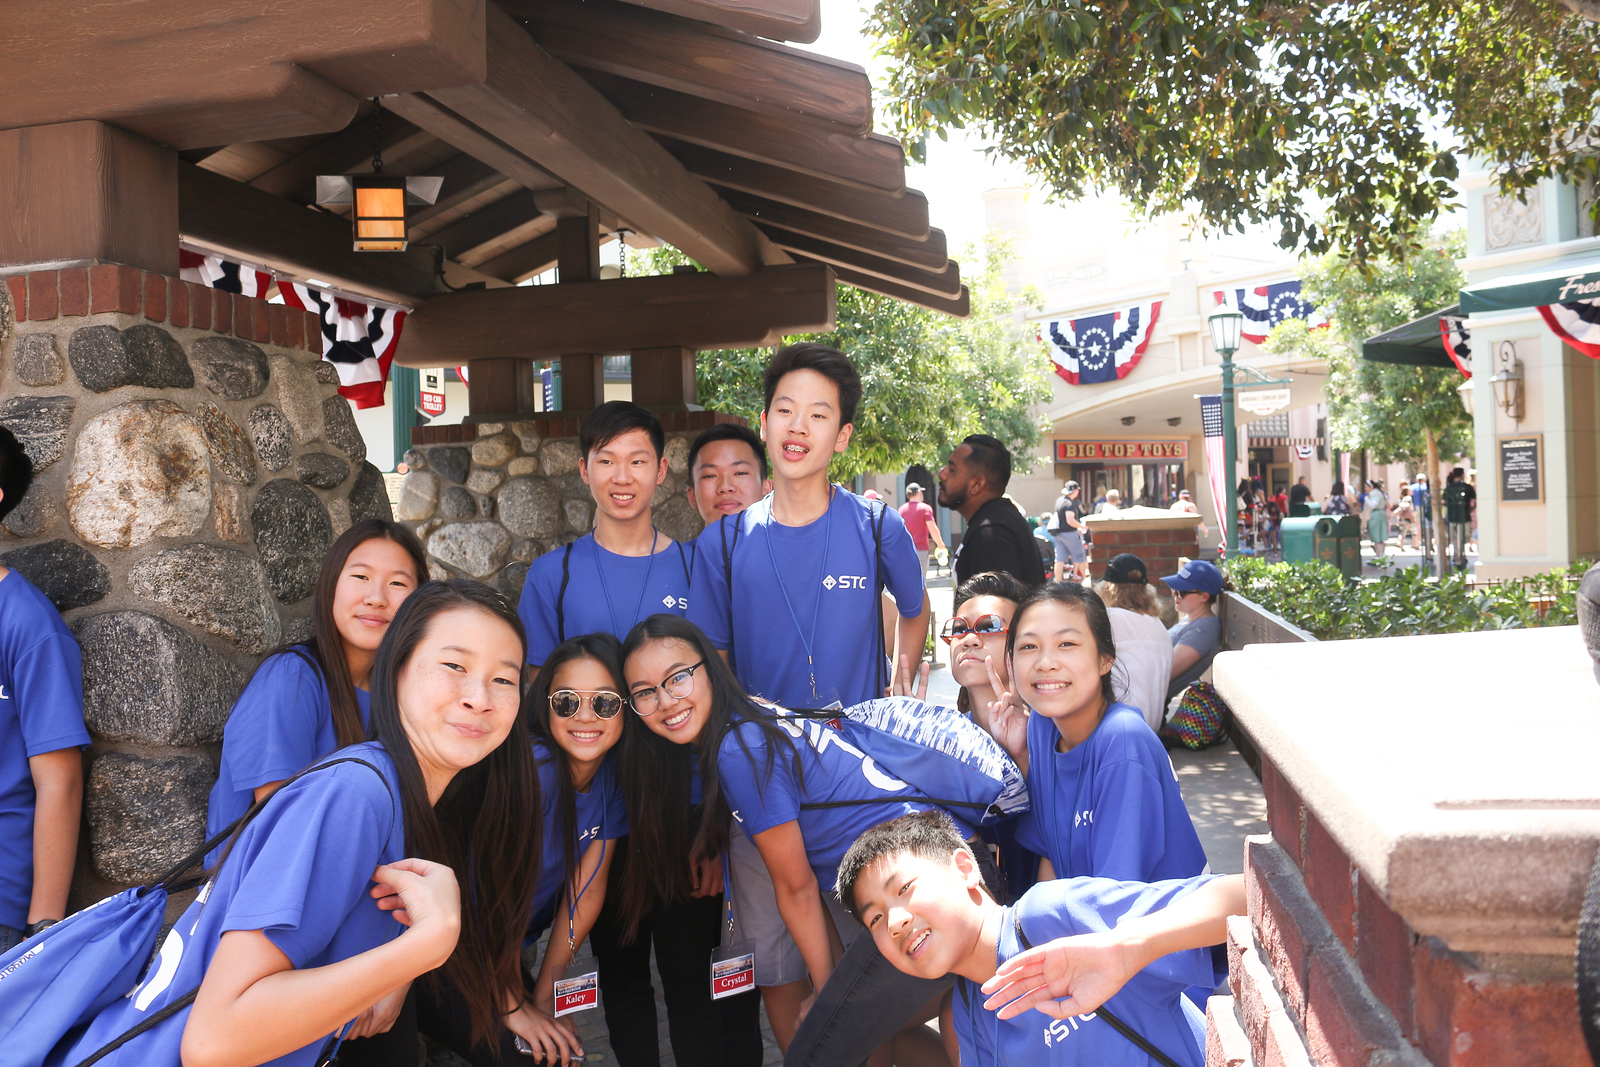 20170727-STC-Youth-Leadership-Disney-138